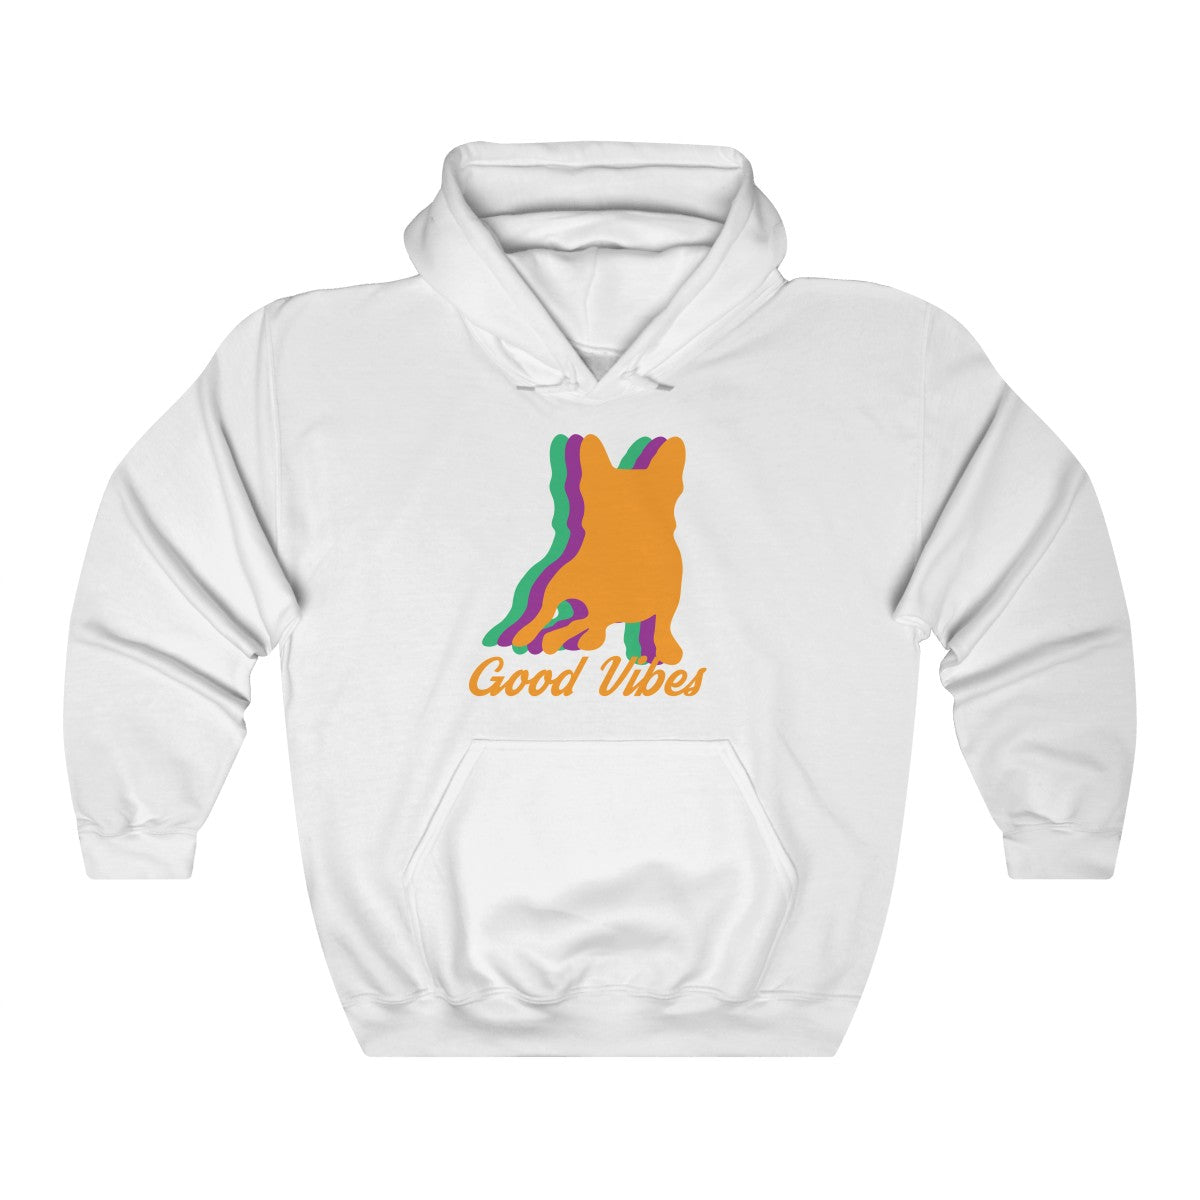 Good Vibes Sweatshirt - Allthingsfrenchie LLC